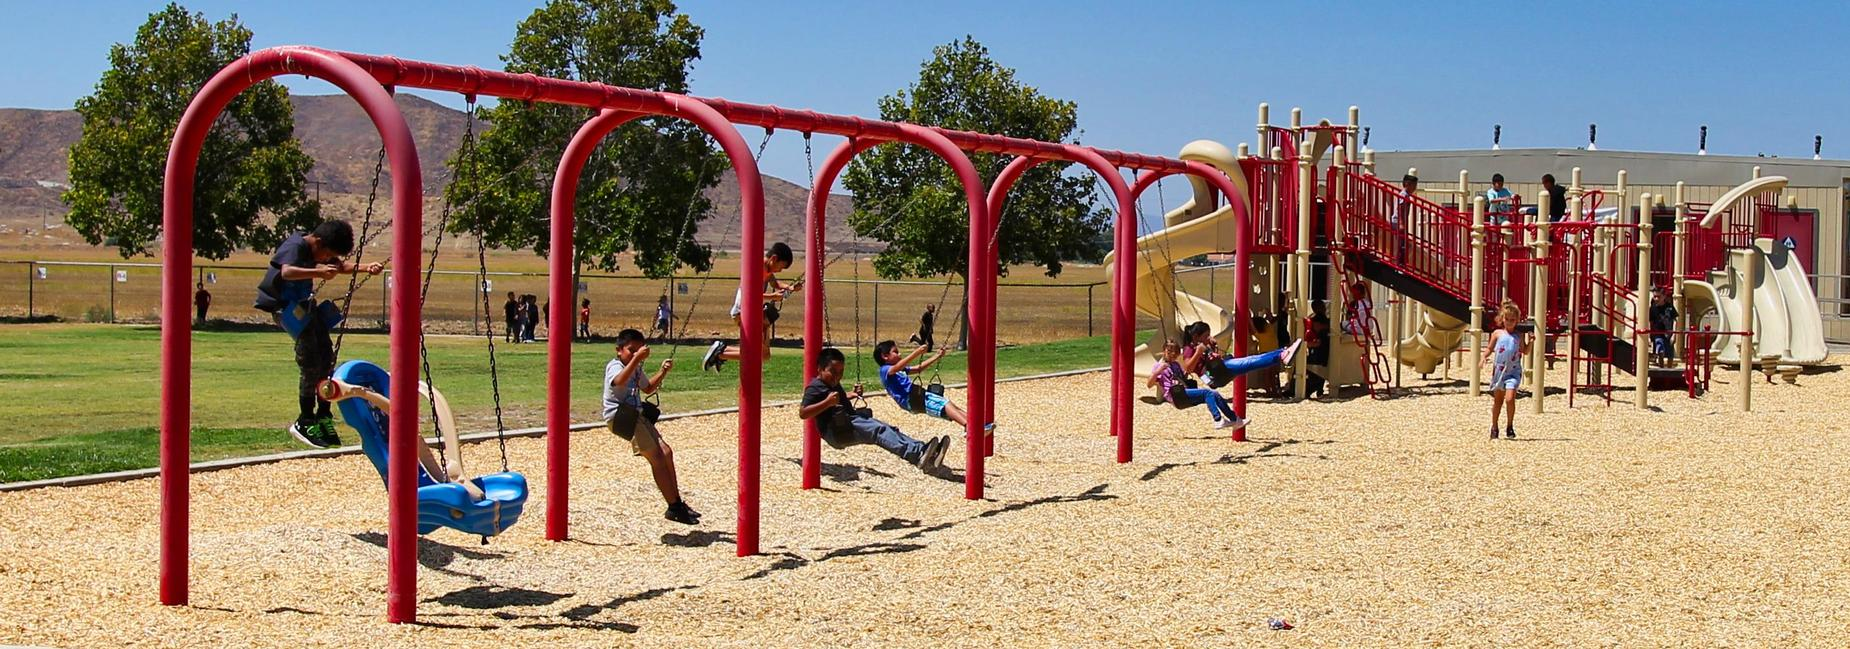 Kids playing on the playground